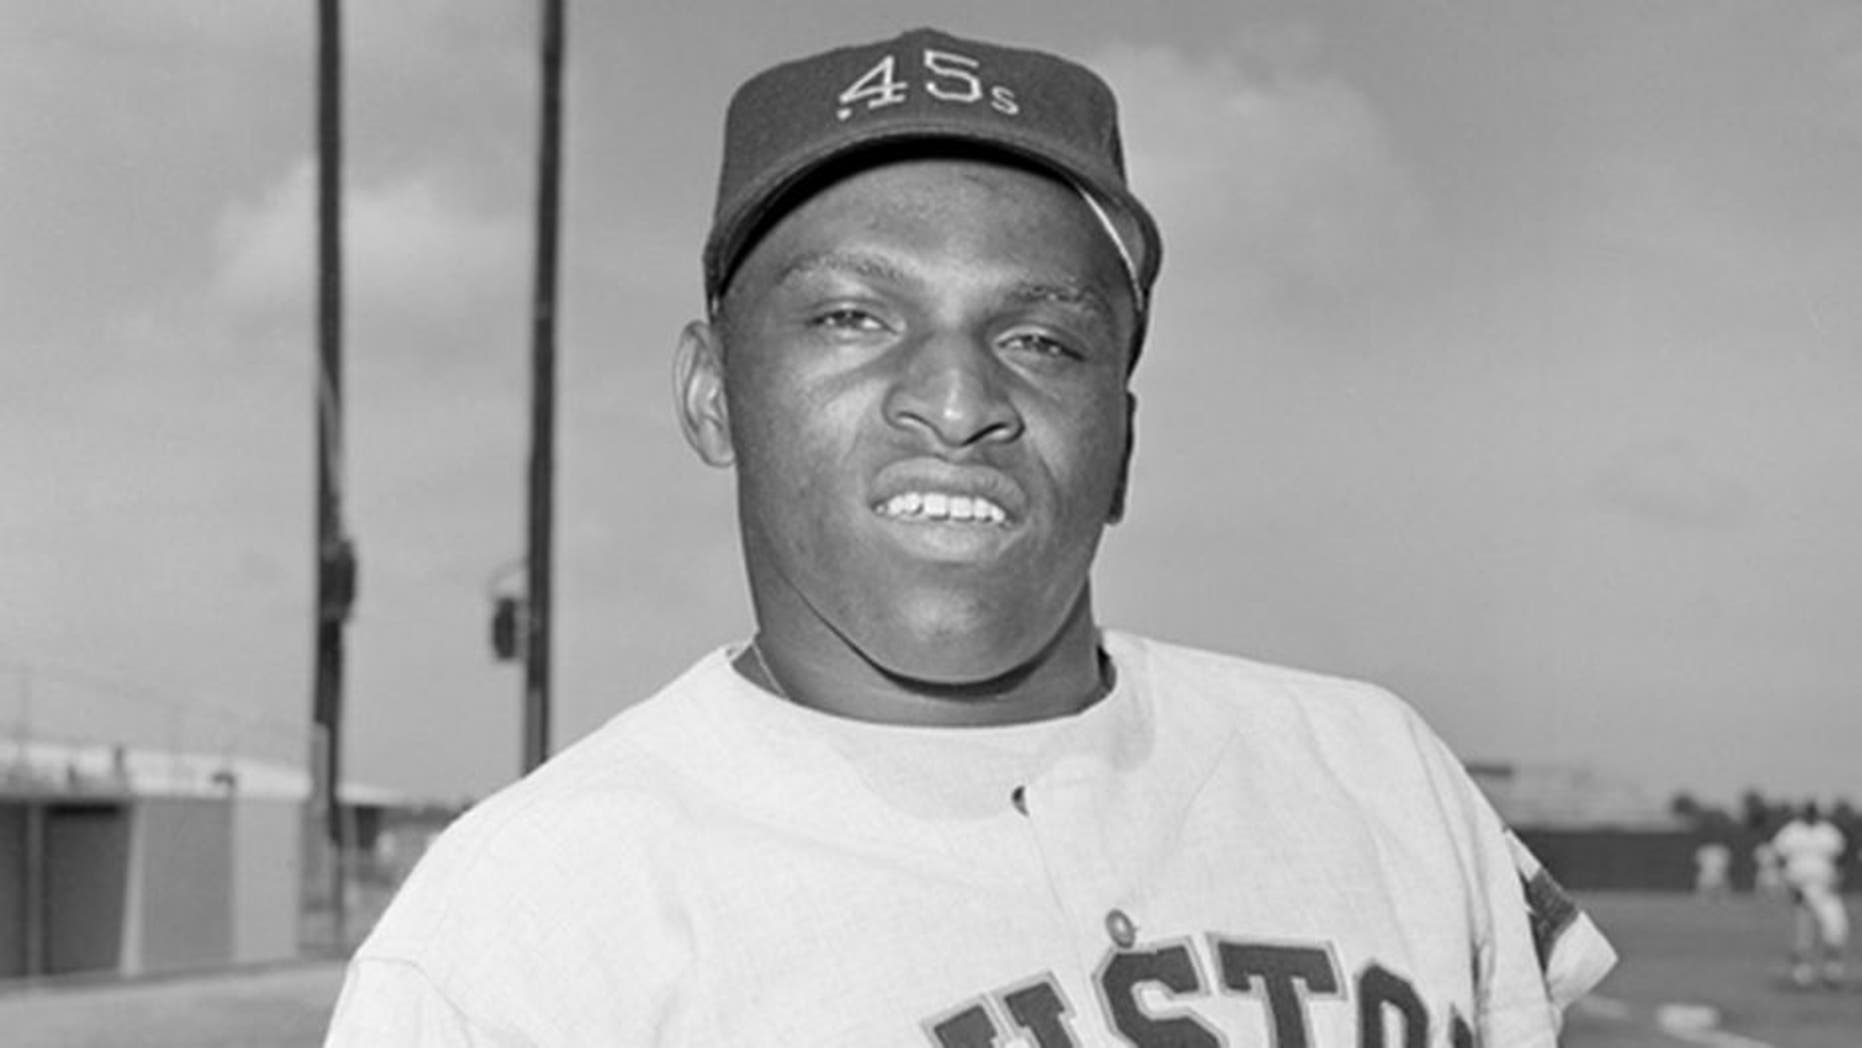 """FILE - In this March 8, 1964, file photo, Walt Williams, outfielder for the the Houston Colt .45s poses. Williams, an outfielder who played for four major league teams in the 1960s and '70s and was best known for his nickname """"No Neck,"""" has husband died of a heart attack Saturday, Jan. 23, 2016, in Abilene,Texas, his wife, Ester, said. He was 72. (AP Photo/Jim Kerlin, File)"""